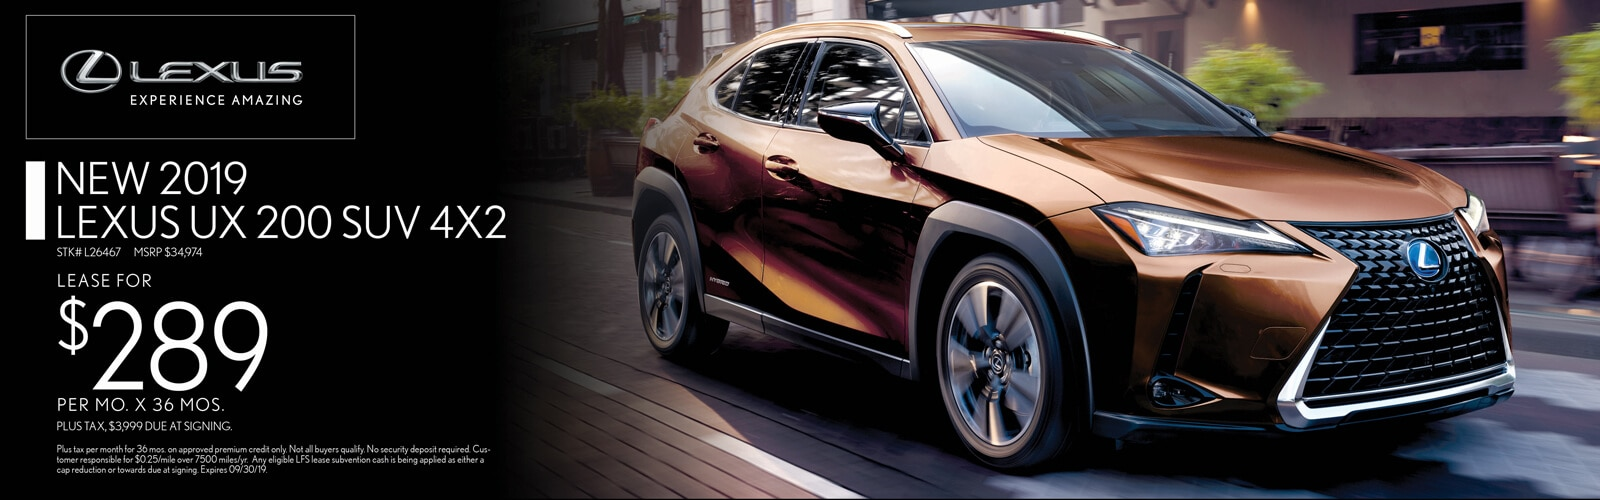 Lease a 2019 Lexus UX 200 for $289/mo. for 36 mos.